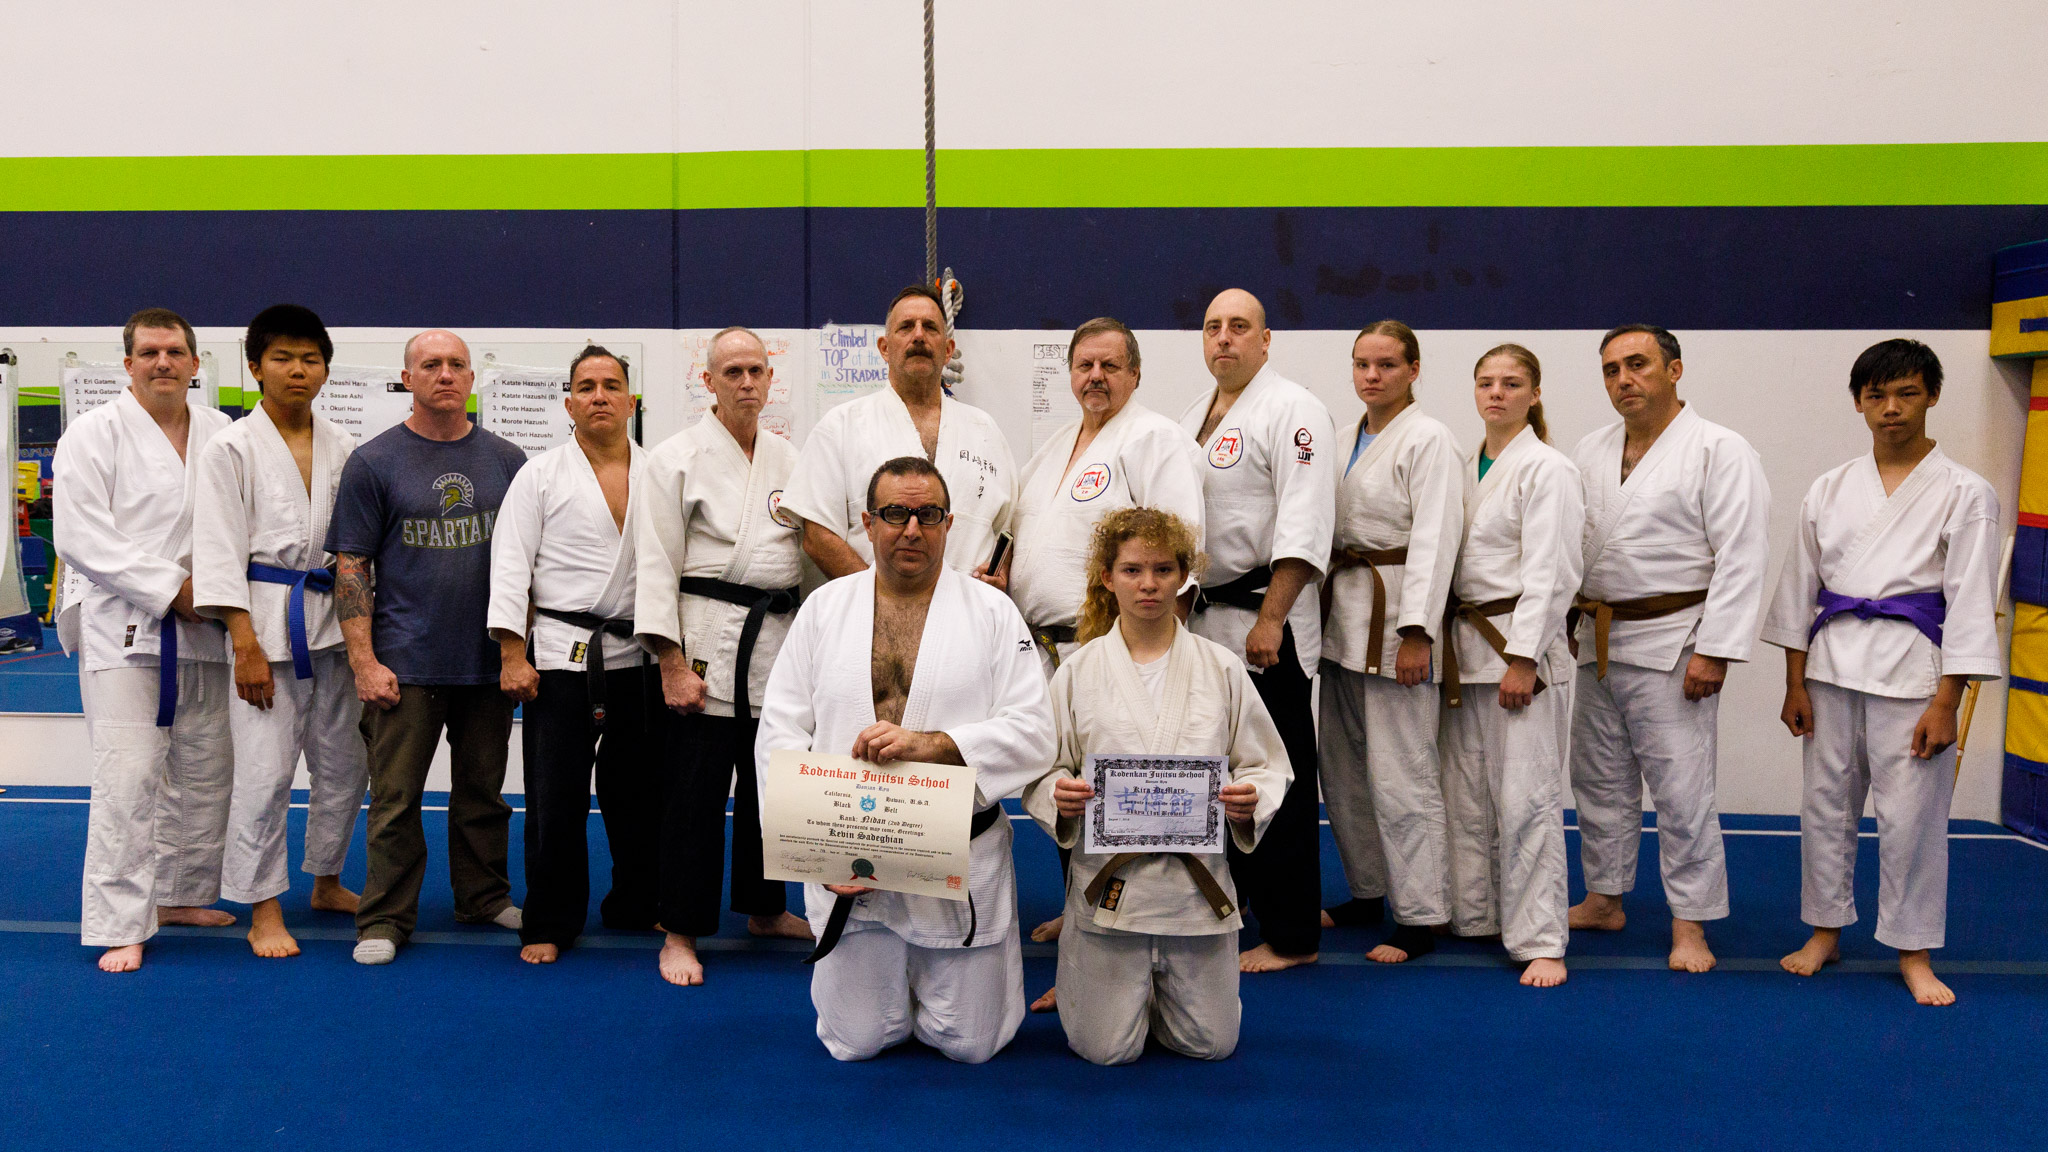 Kevin Sadeghian is promoted to nidan (2nd degree black belt), and Kira is promoted to ikkyu (1st degree brown belt)